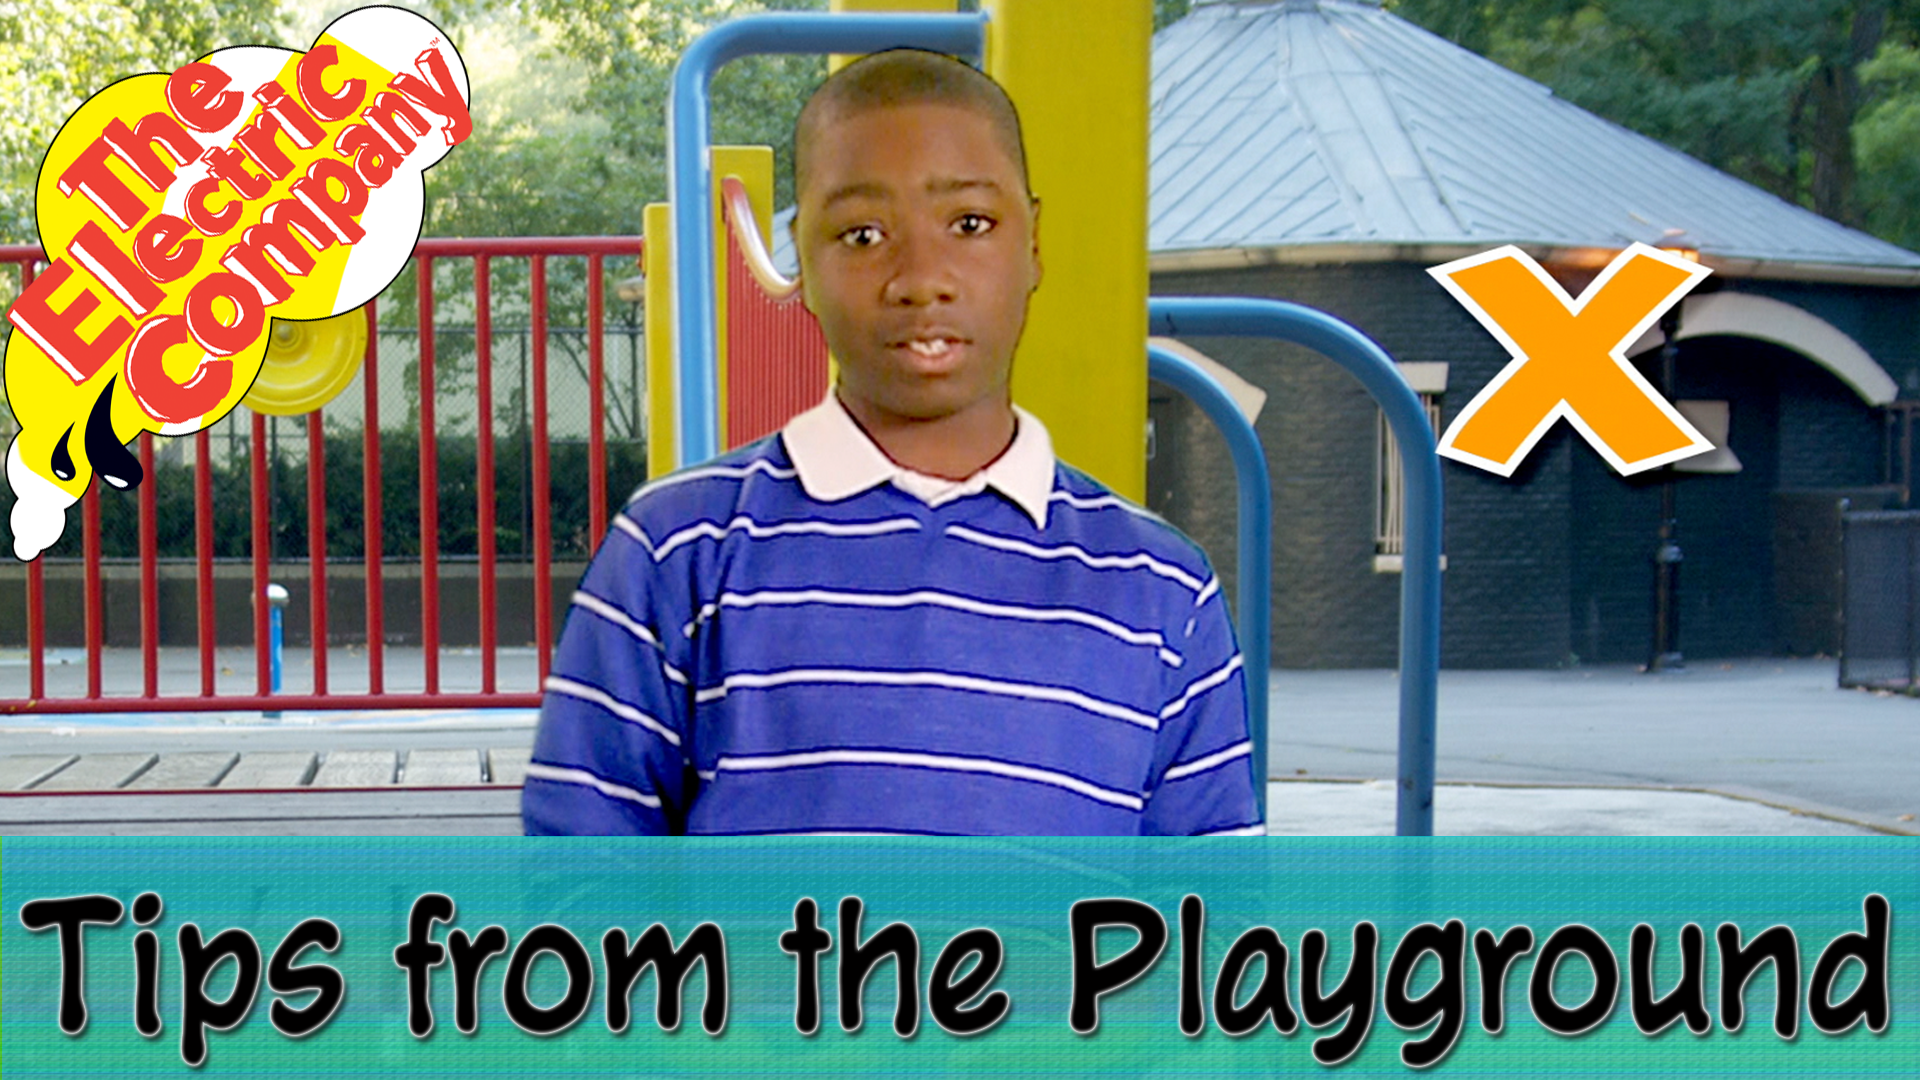 Tips from the playground:X